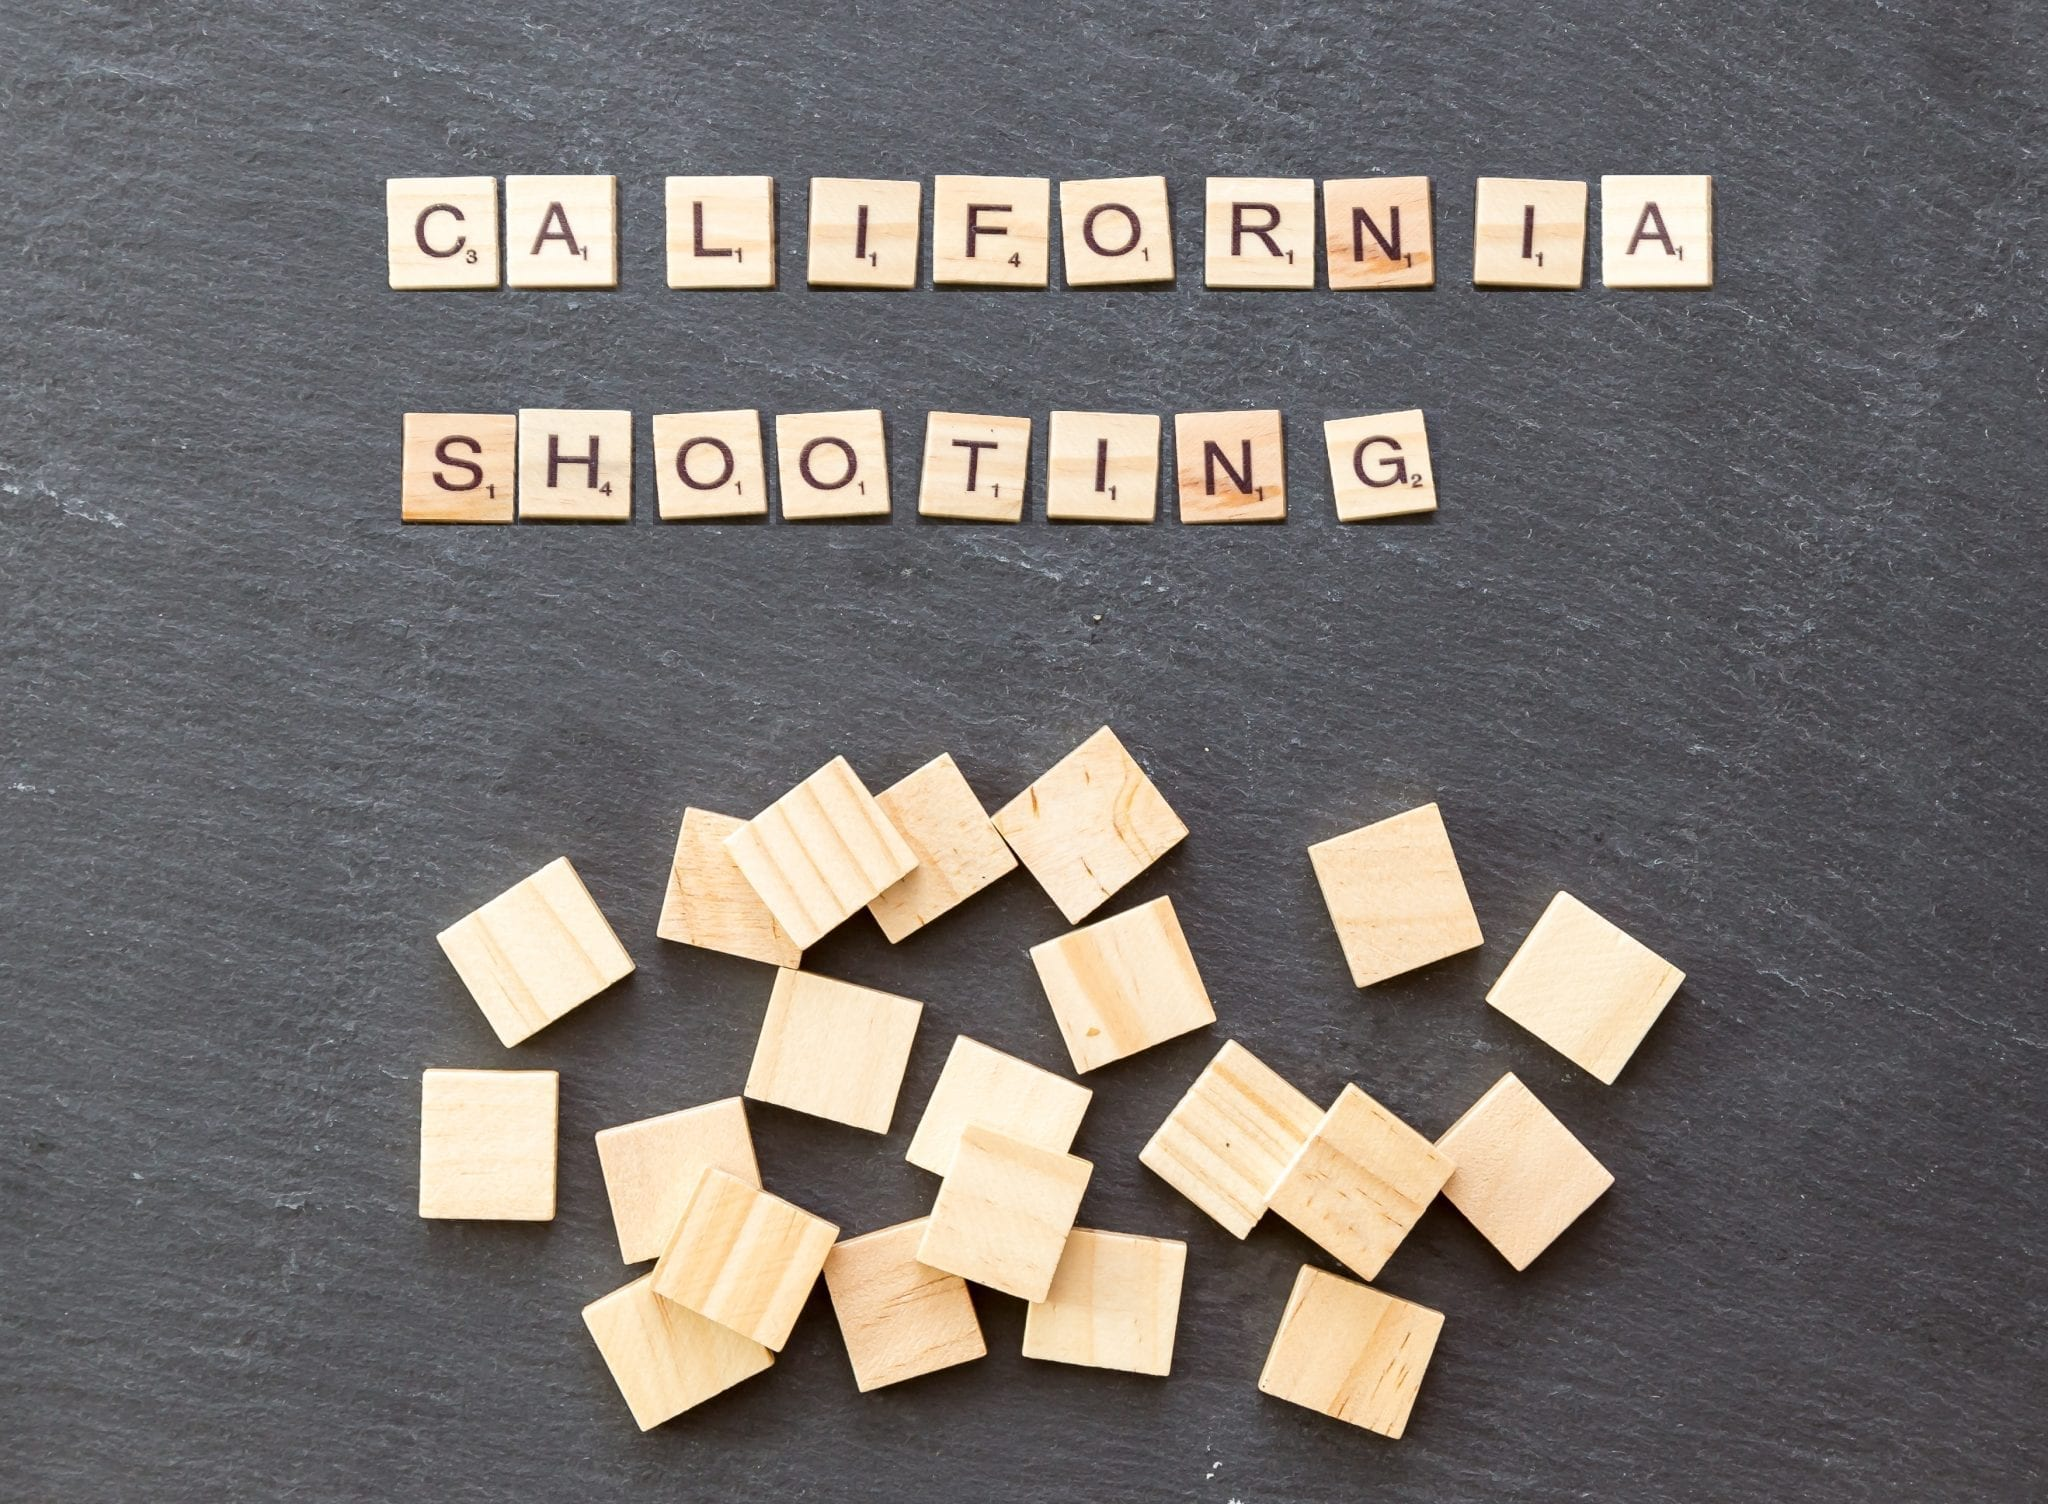 California school shootings; image by Marco Verch, via Flickr, CC BY 2.0, no changes made.